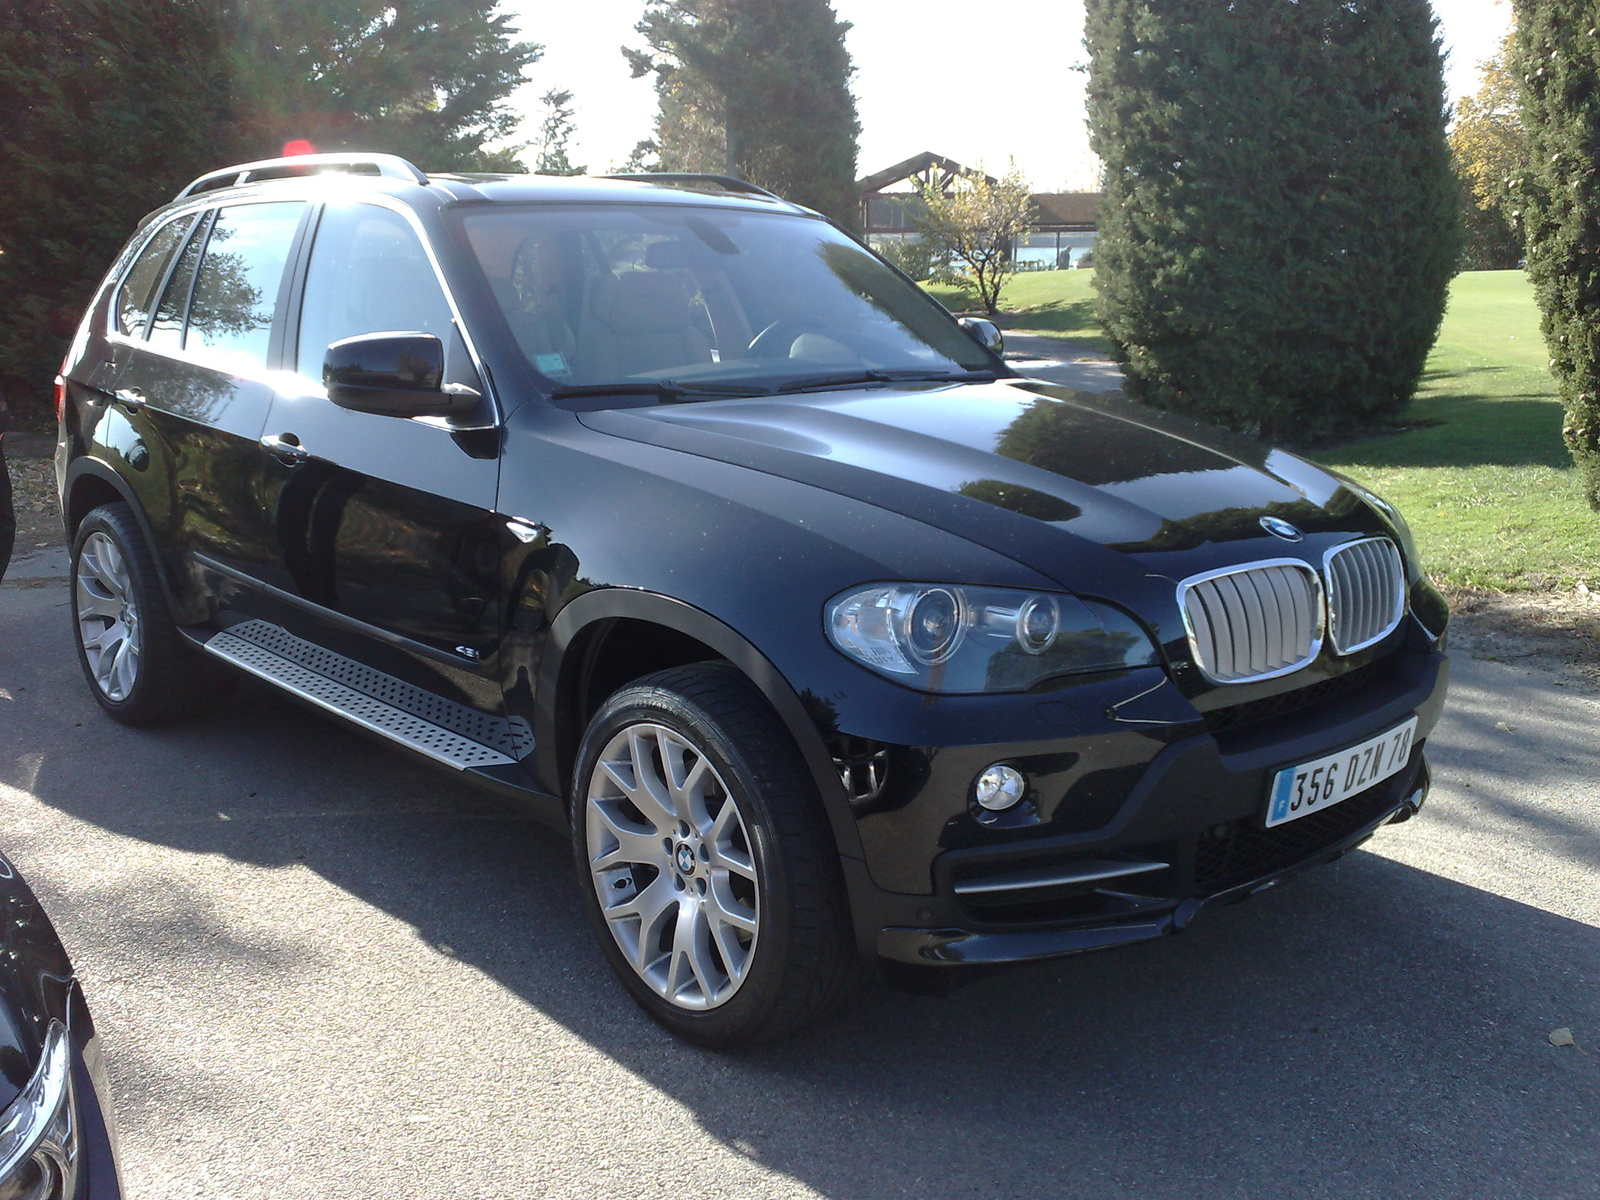 Bmw X6m Horsepower.BMW Photo Gallery. BMW X6 Reviews Specs ...